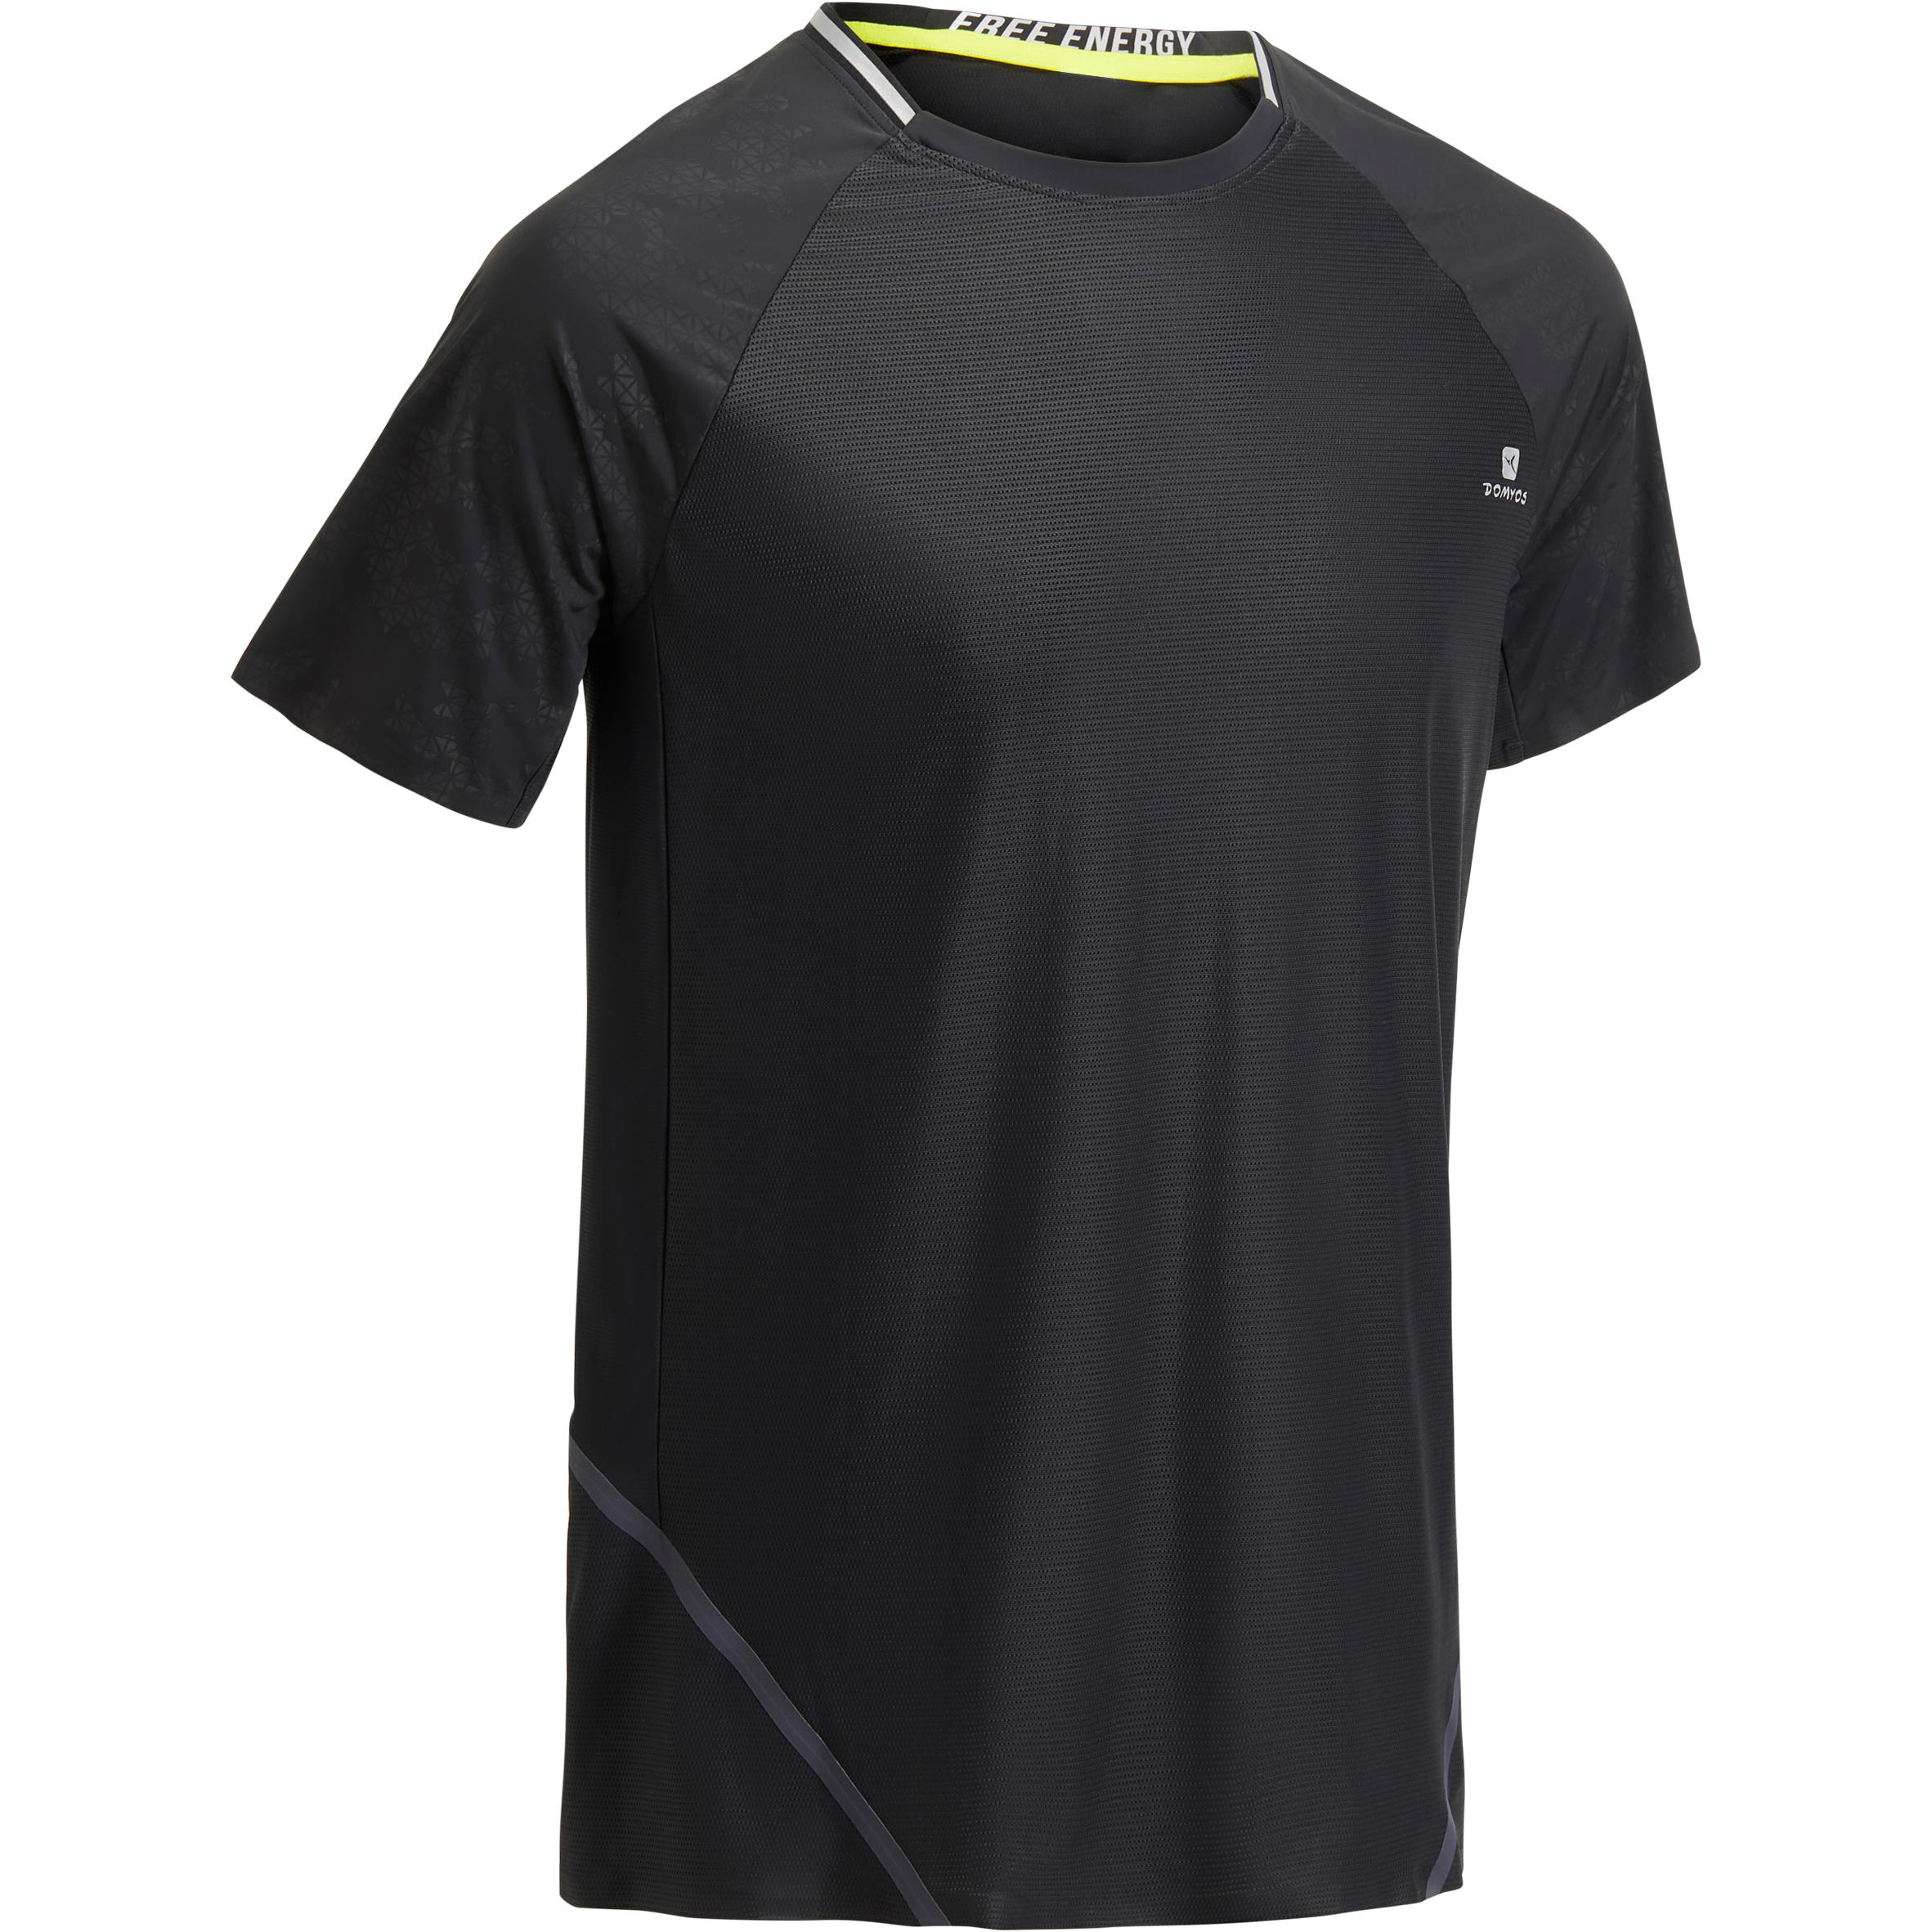 FTS920 Fitness Cardio T-Shirt - Black